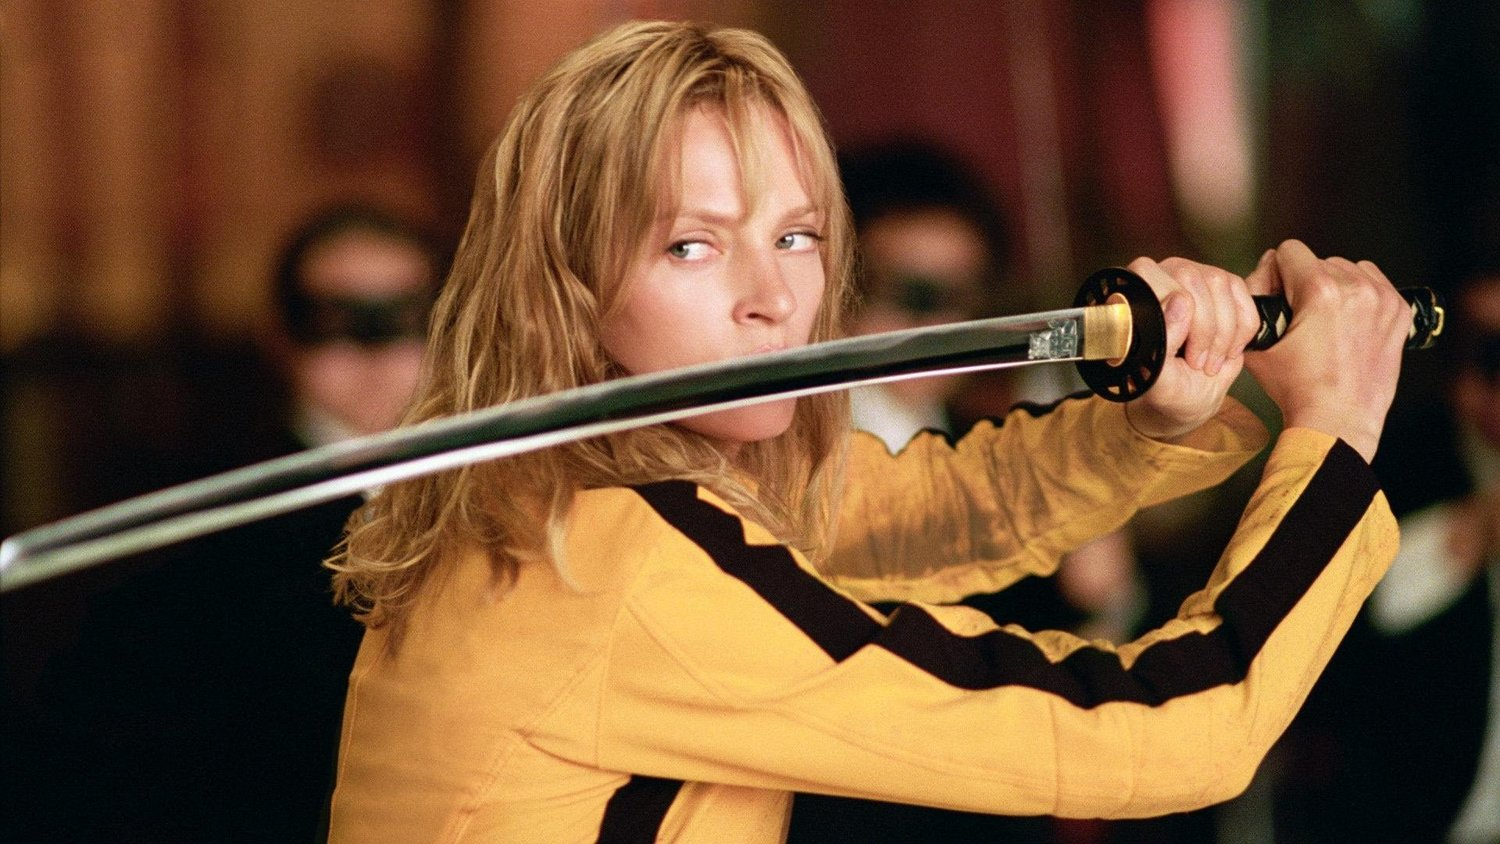 Uma Thurman Says Turning Down LORD OF THE RINGS Was a Mistake